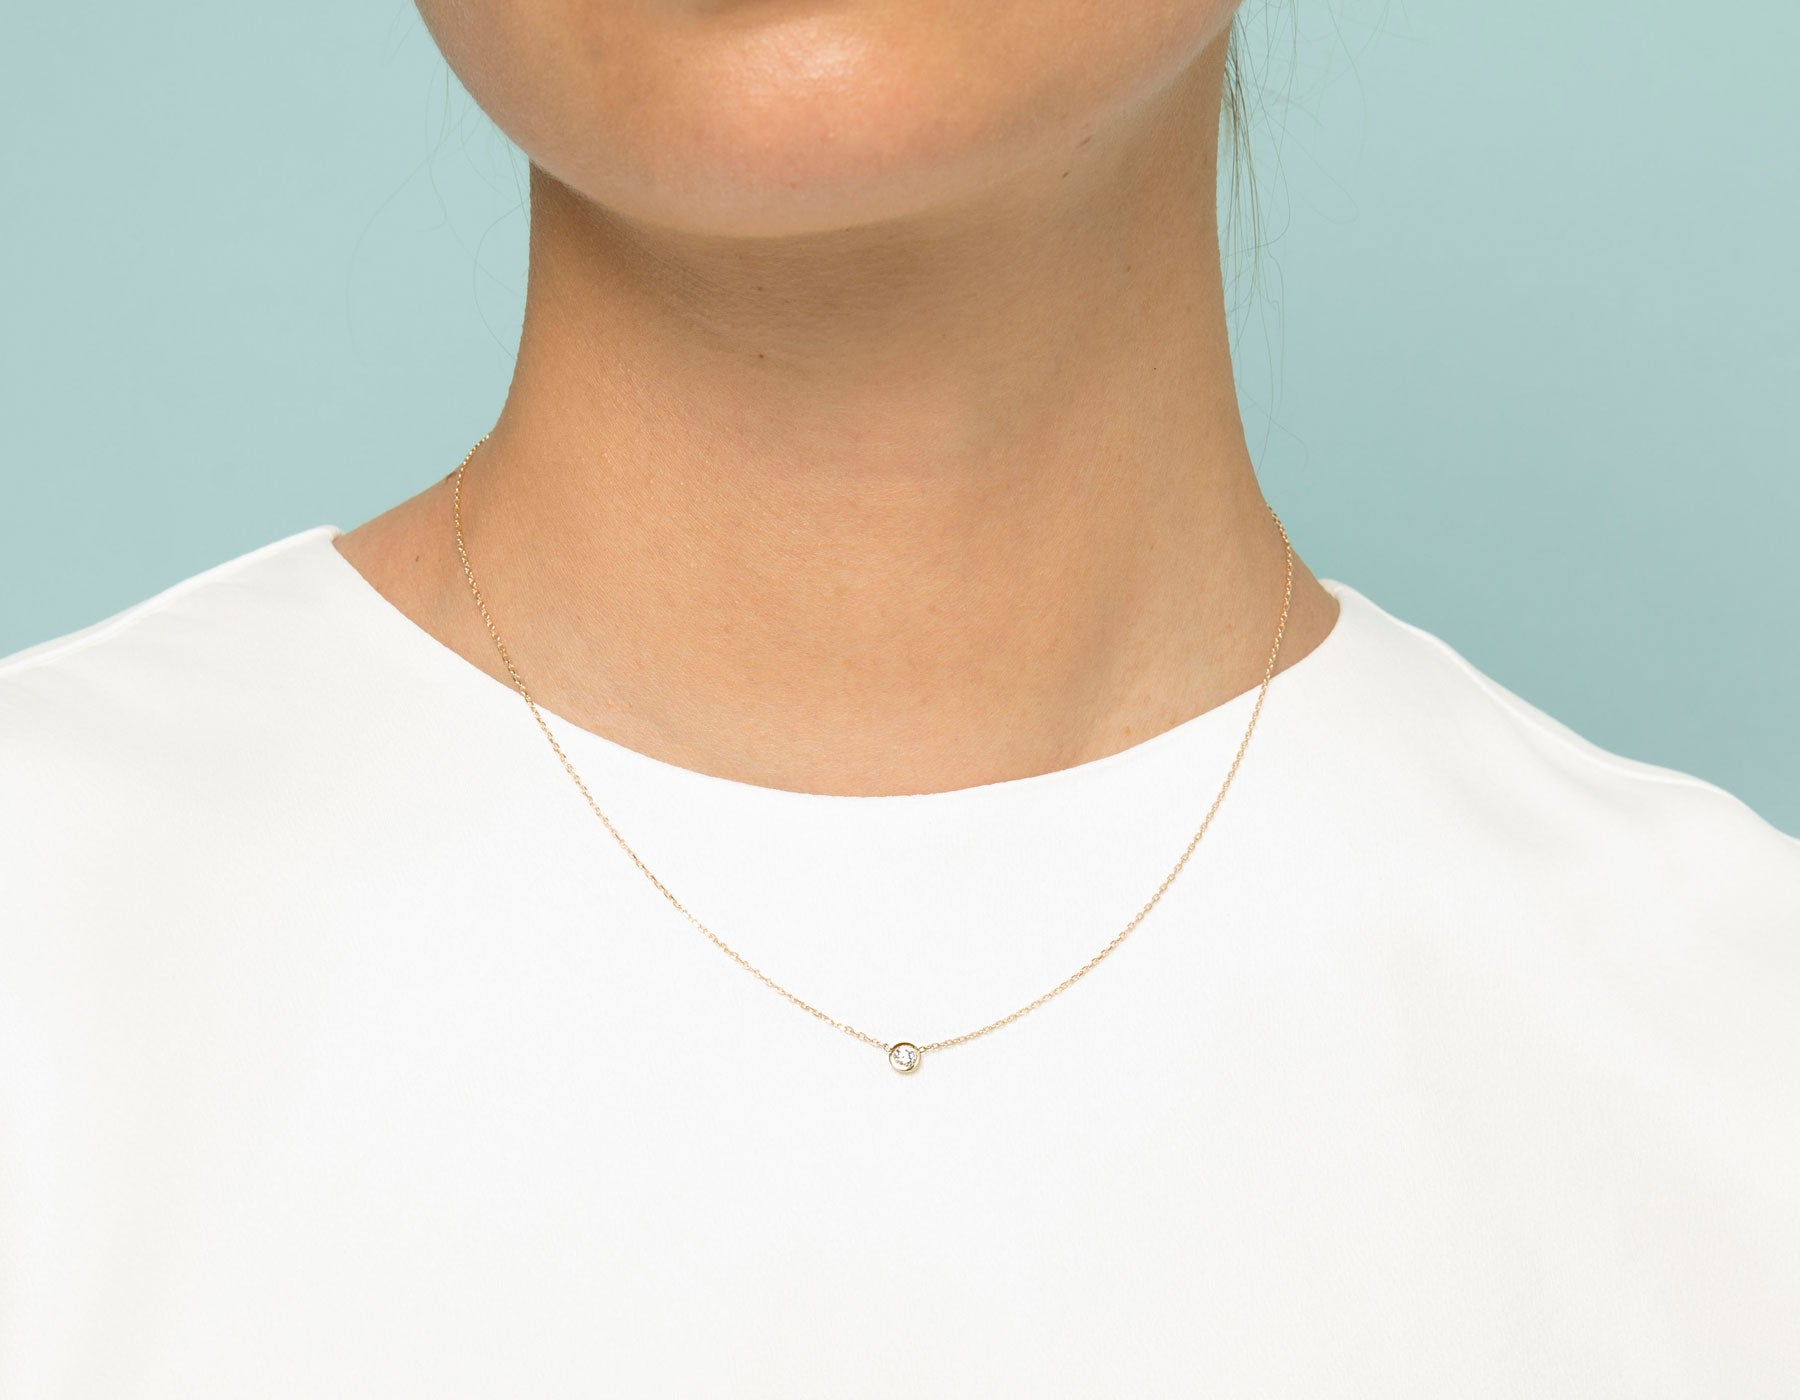 Model wearing dainty minimalist Round Diamond Bezel Necklace by Vrai, 14K Rose Gold